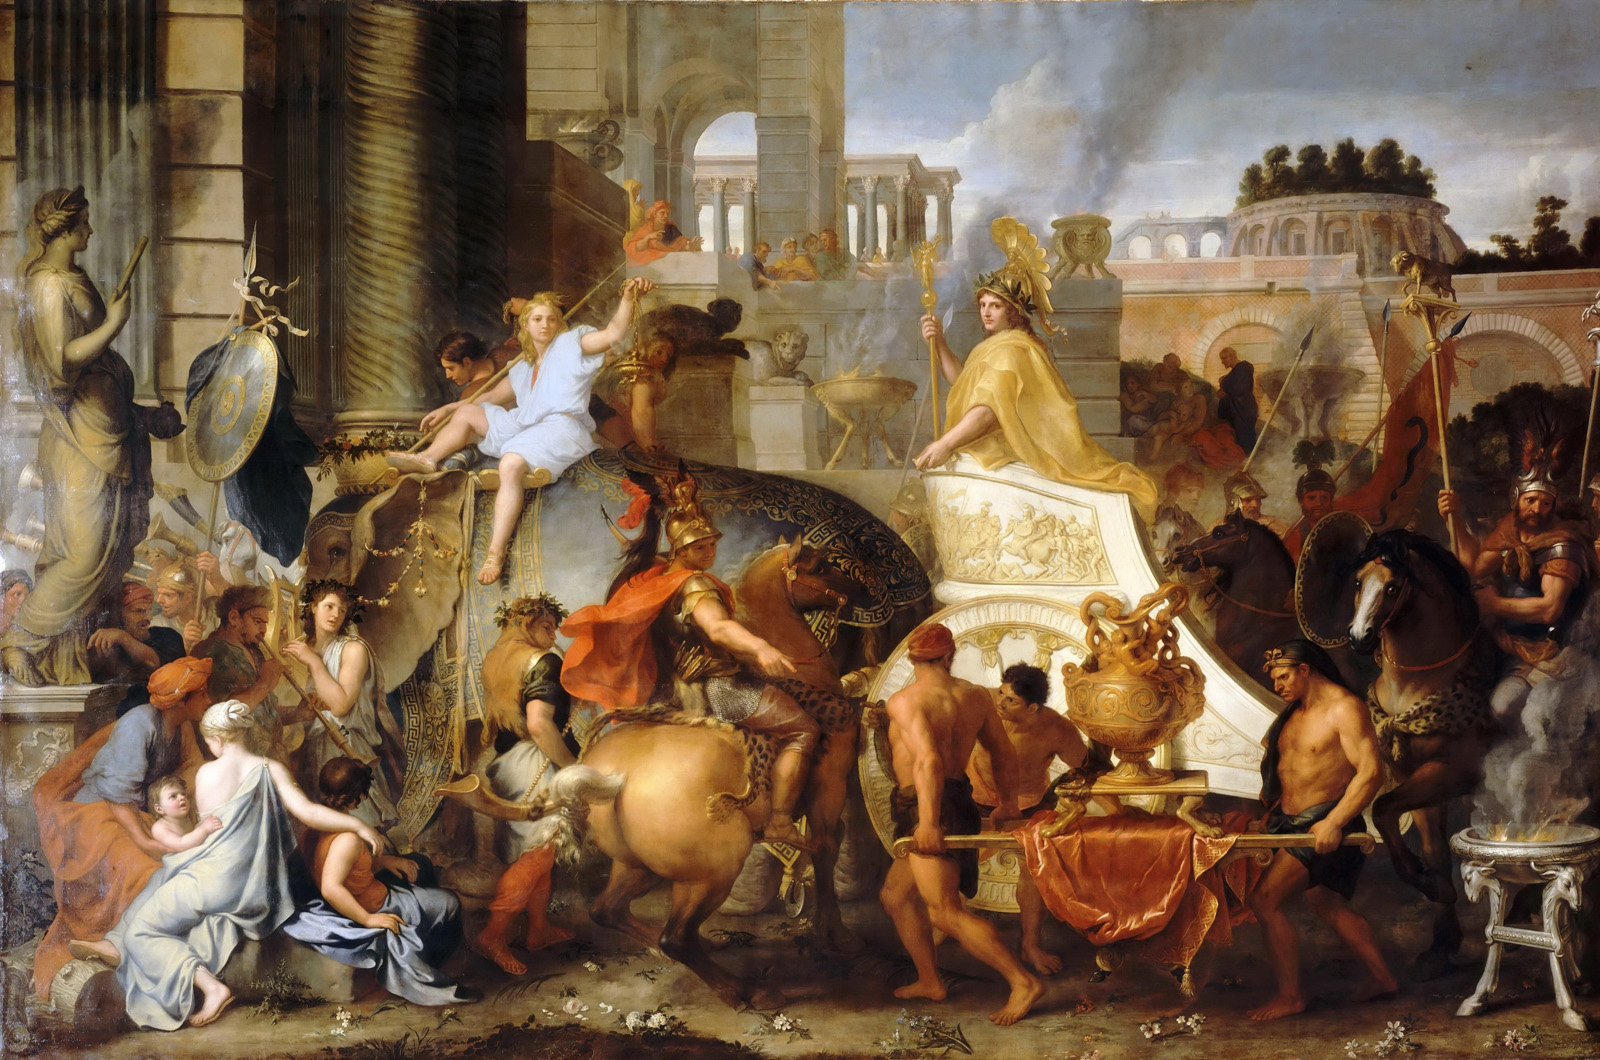 Charles Lebrun: Einzug Alexanders in Babylon. 1661-1665 © https://upload.wikimedia.org/wikipedia/commons/c/c1/Charles_Le_Brun_-_Entry_of_Alexander_into_Babylon.JPG.